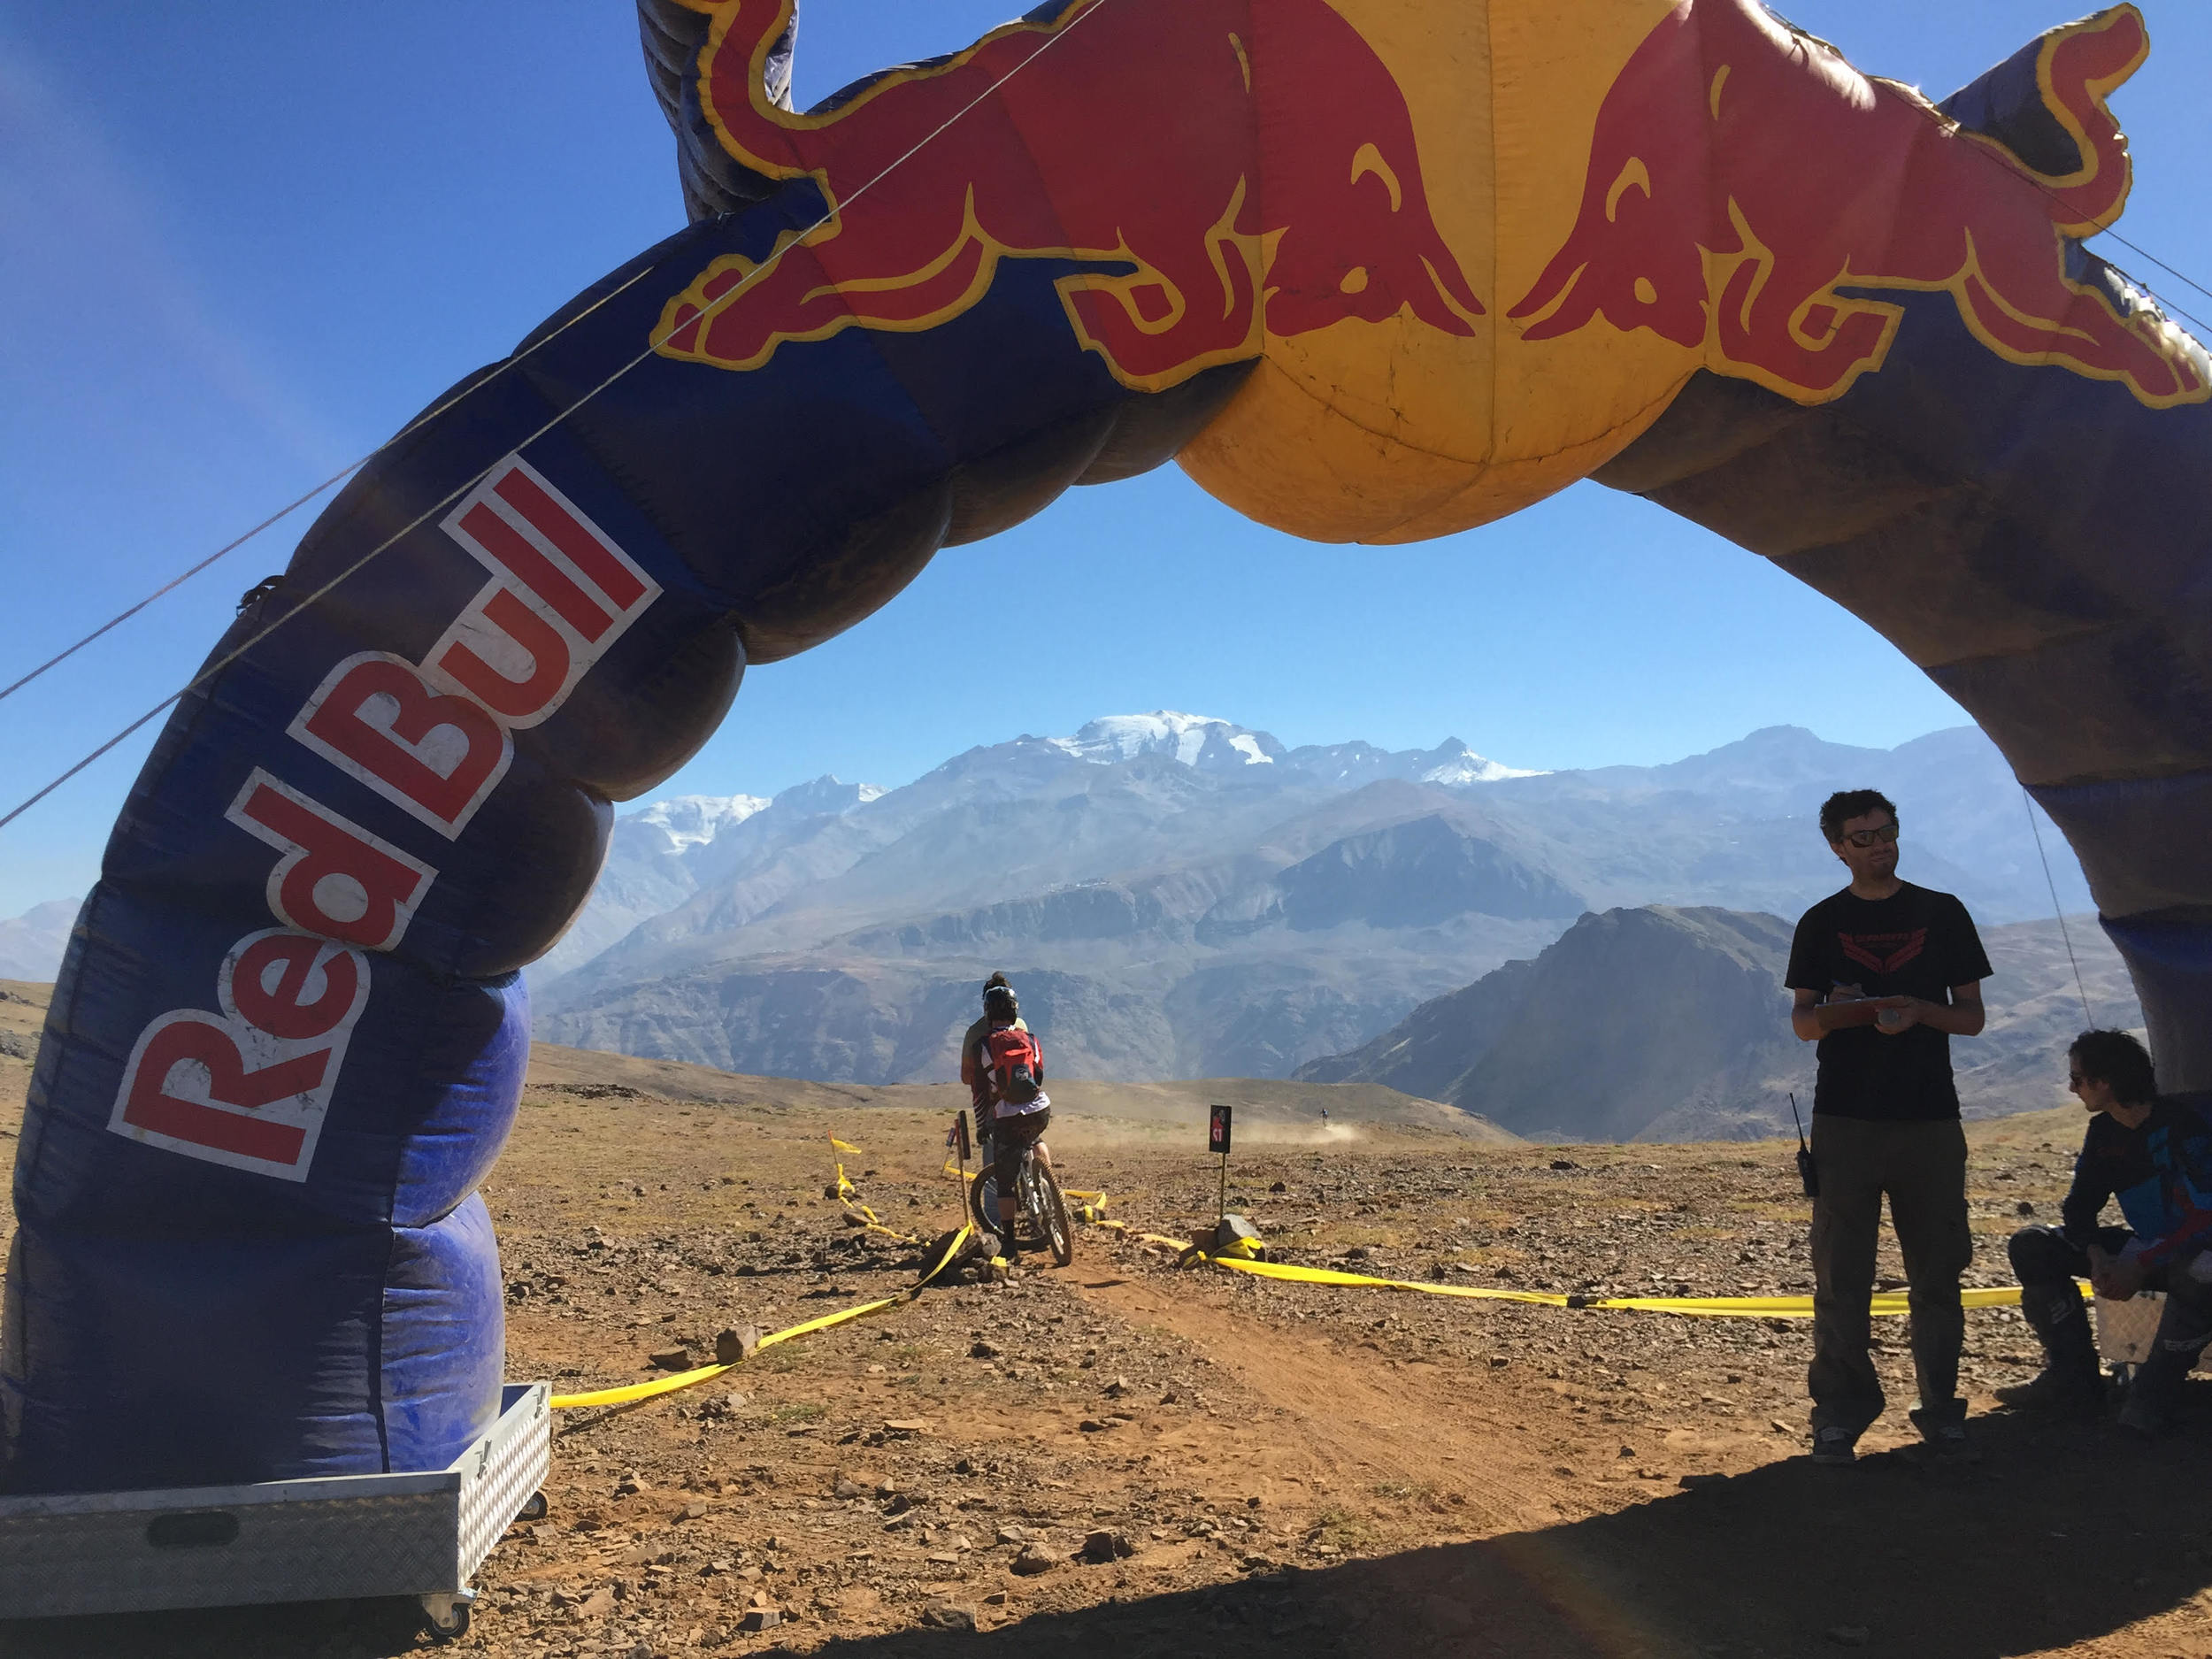 The first stage of Day 2 began here and descended into the valley below. If the views weren't enough to get you excited, Red Bull also had a DJ pumping out the tunes as riders crossed the start line.